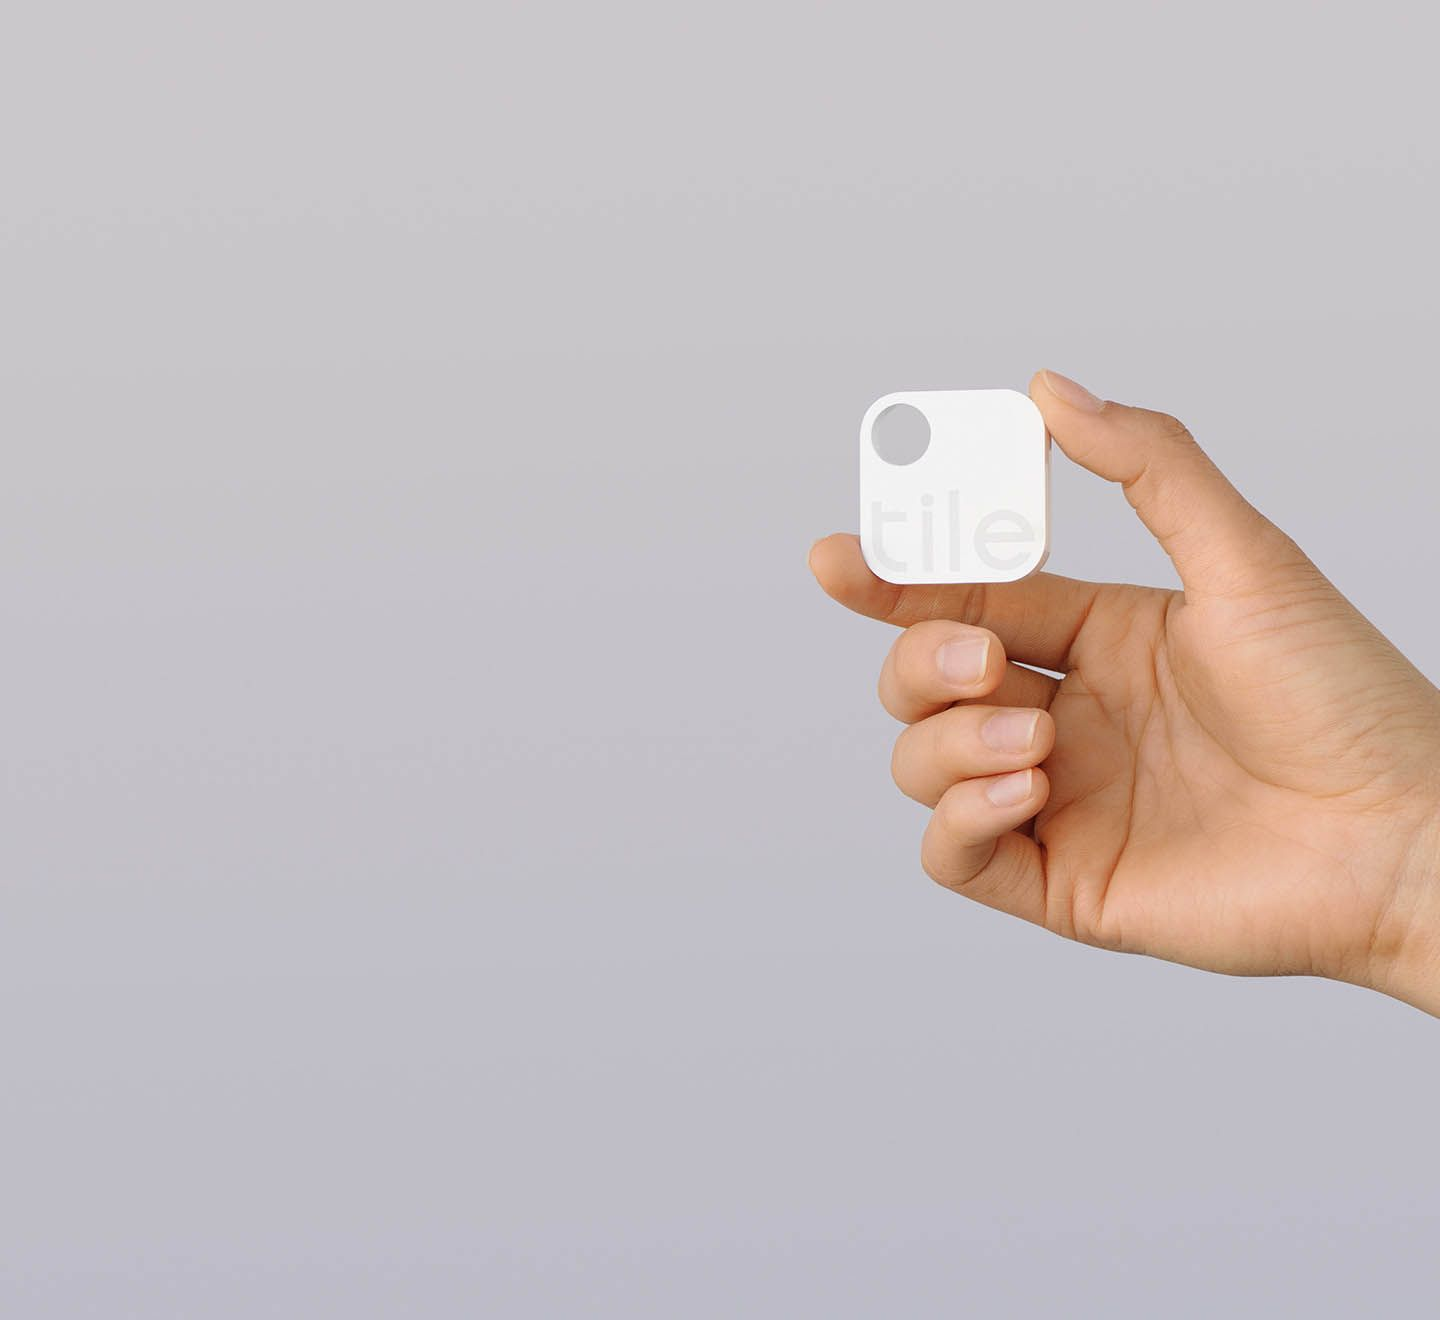 Learn How Tile's Bluetooth Tracking Device & Tracker App